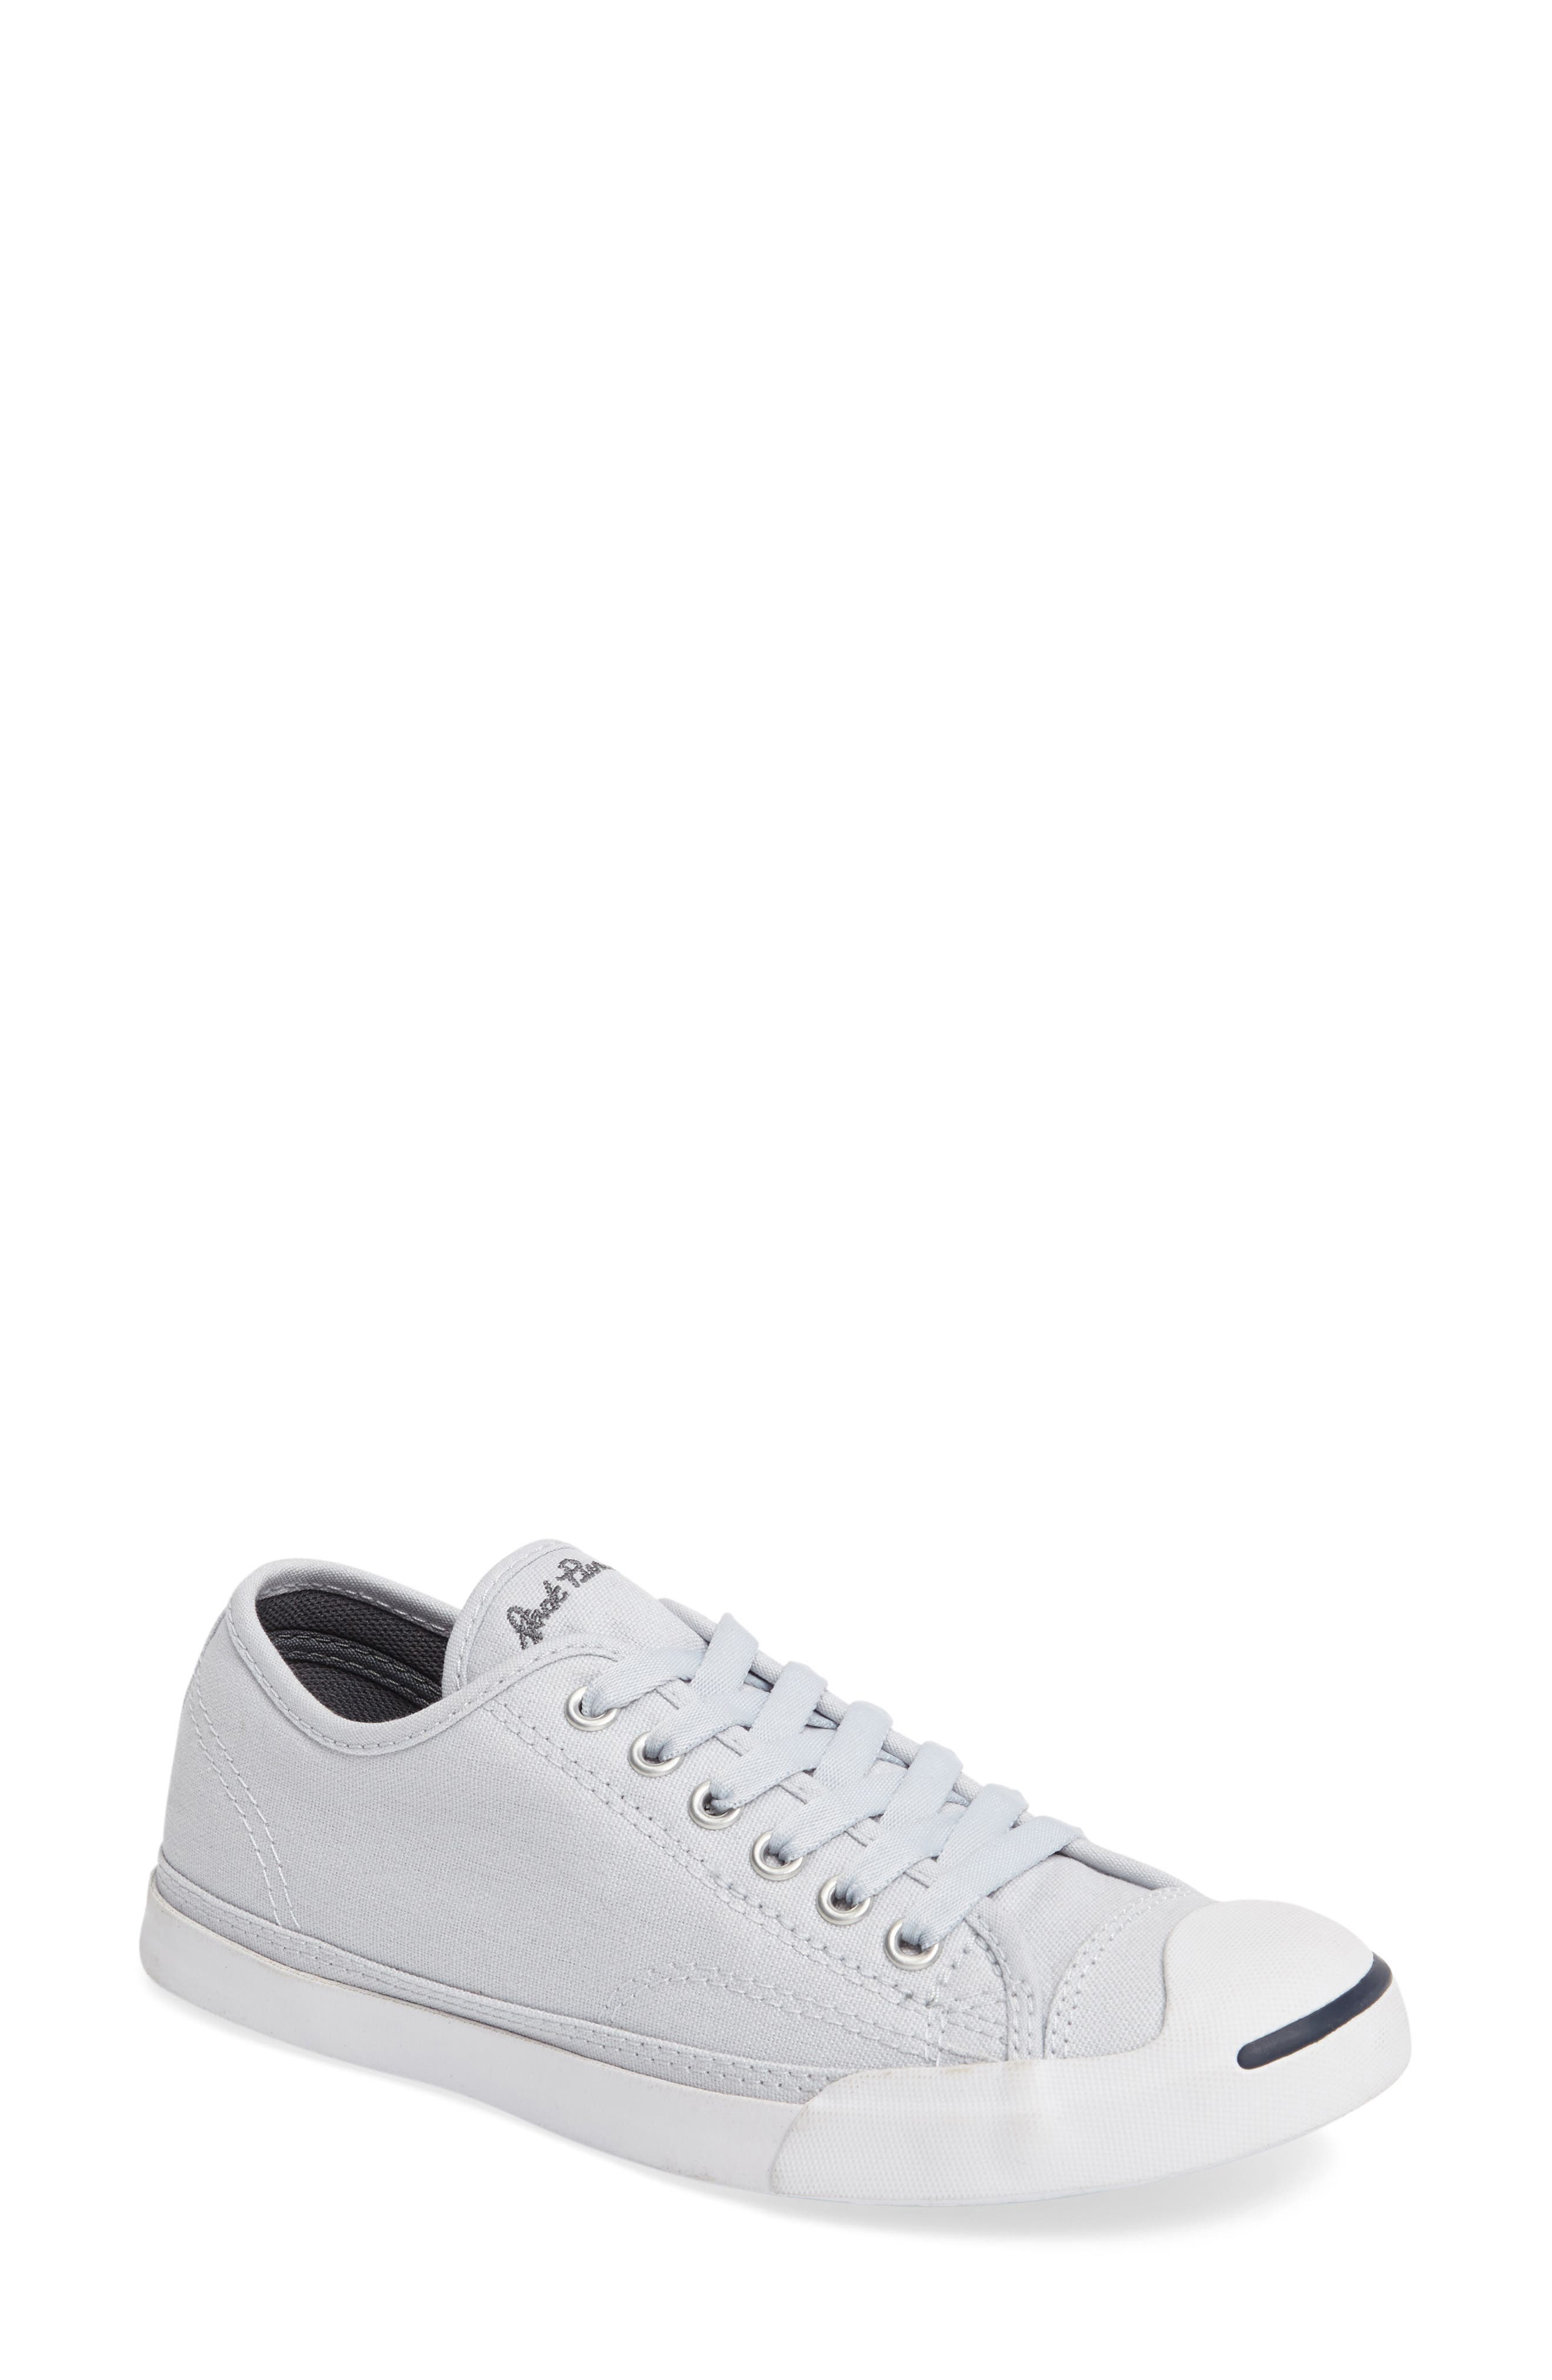 Jack Purcell Signature Ox Low Top Sneaker,                             Main thumbnail 1, color,                             Platinum